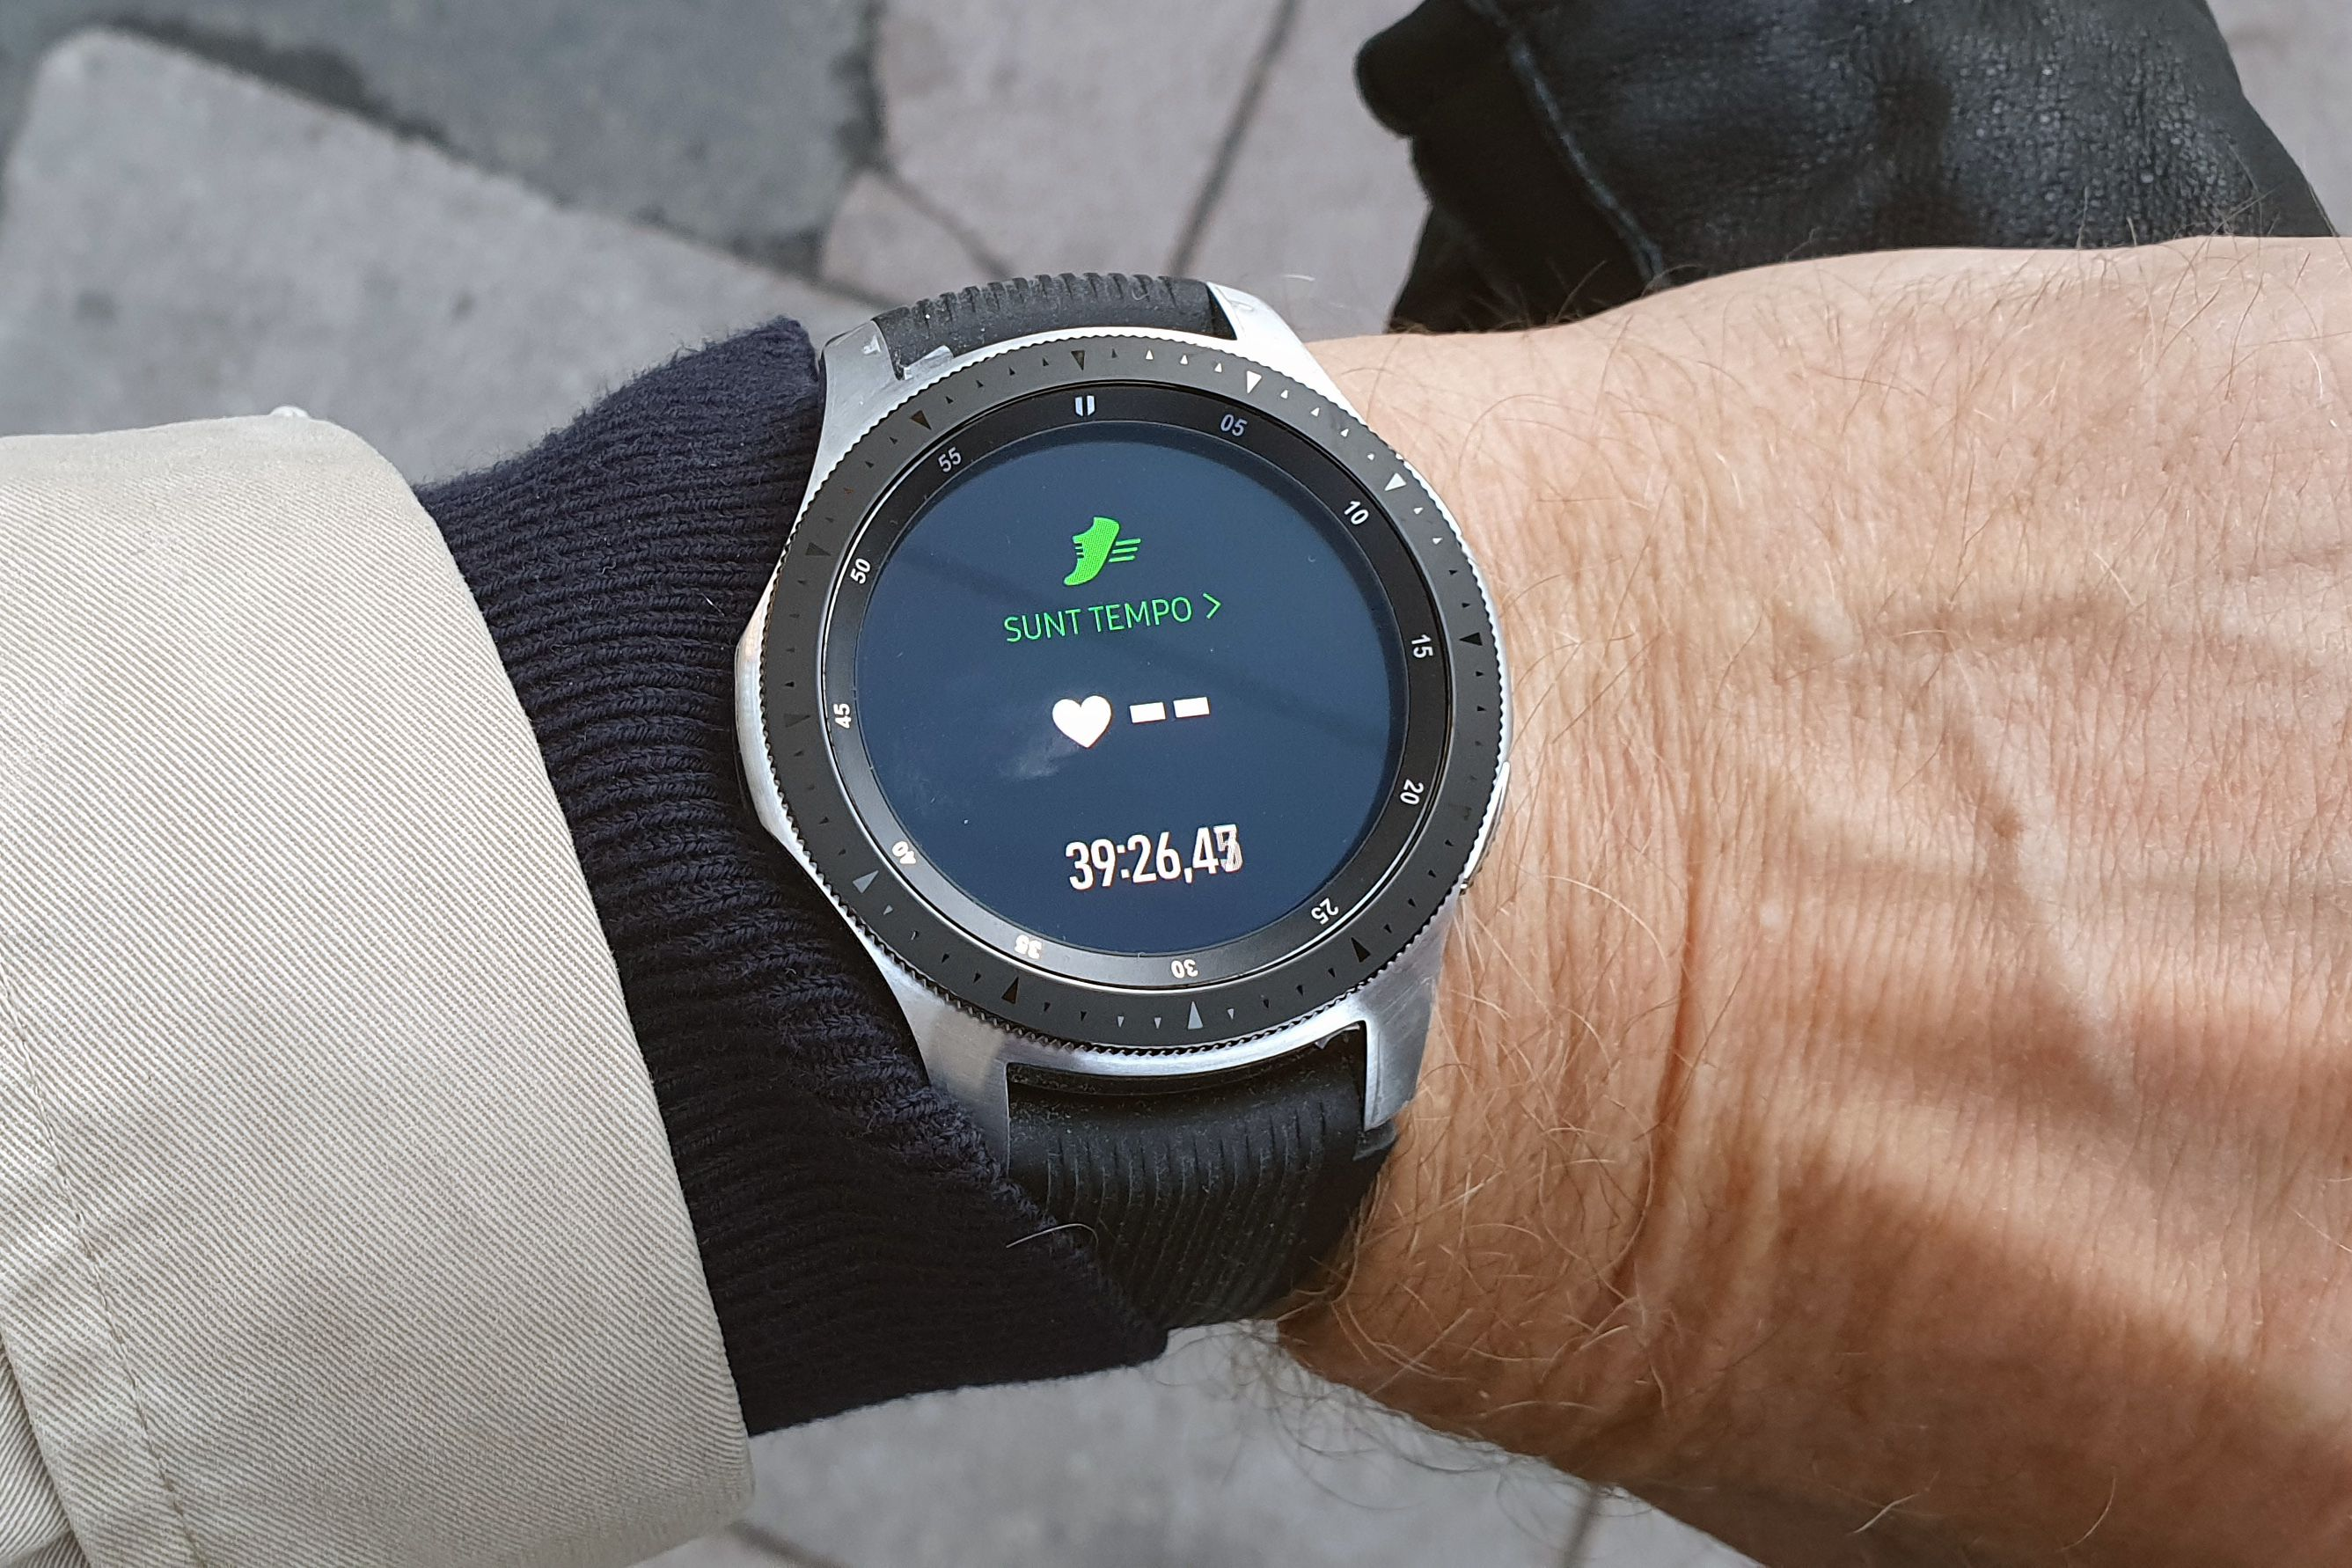 TEST: Samsung Galaxy Watch Digi.no